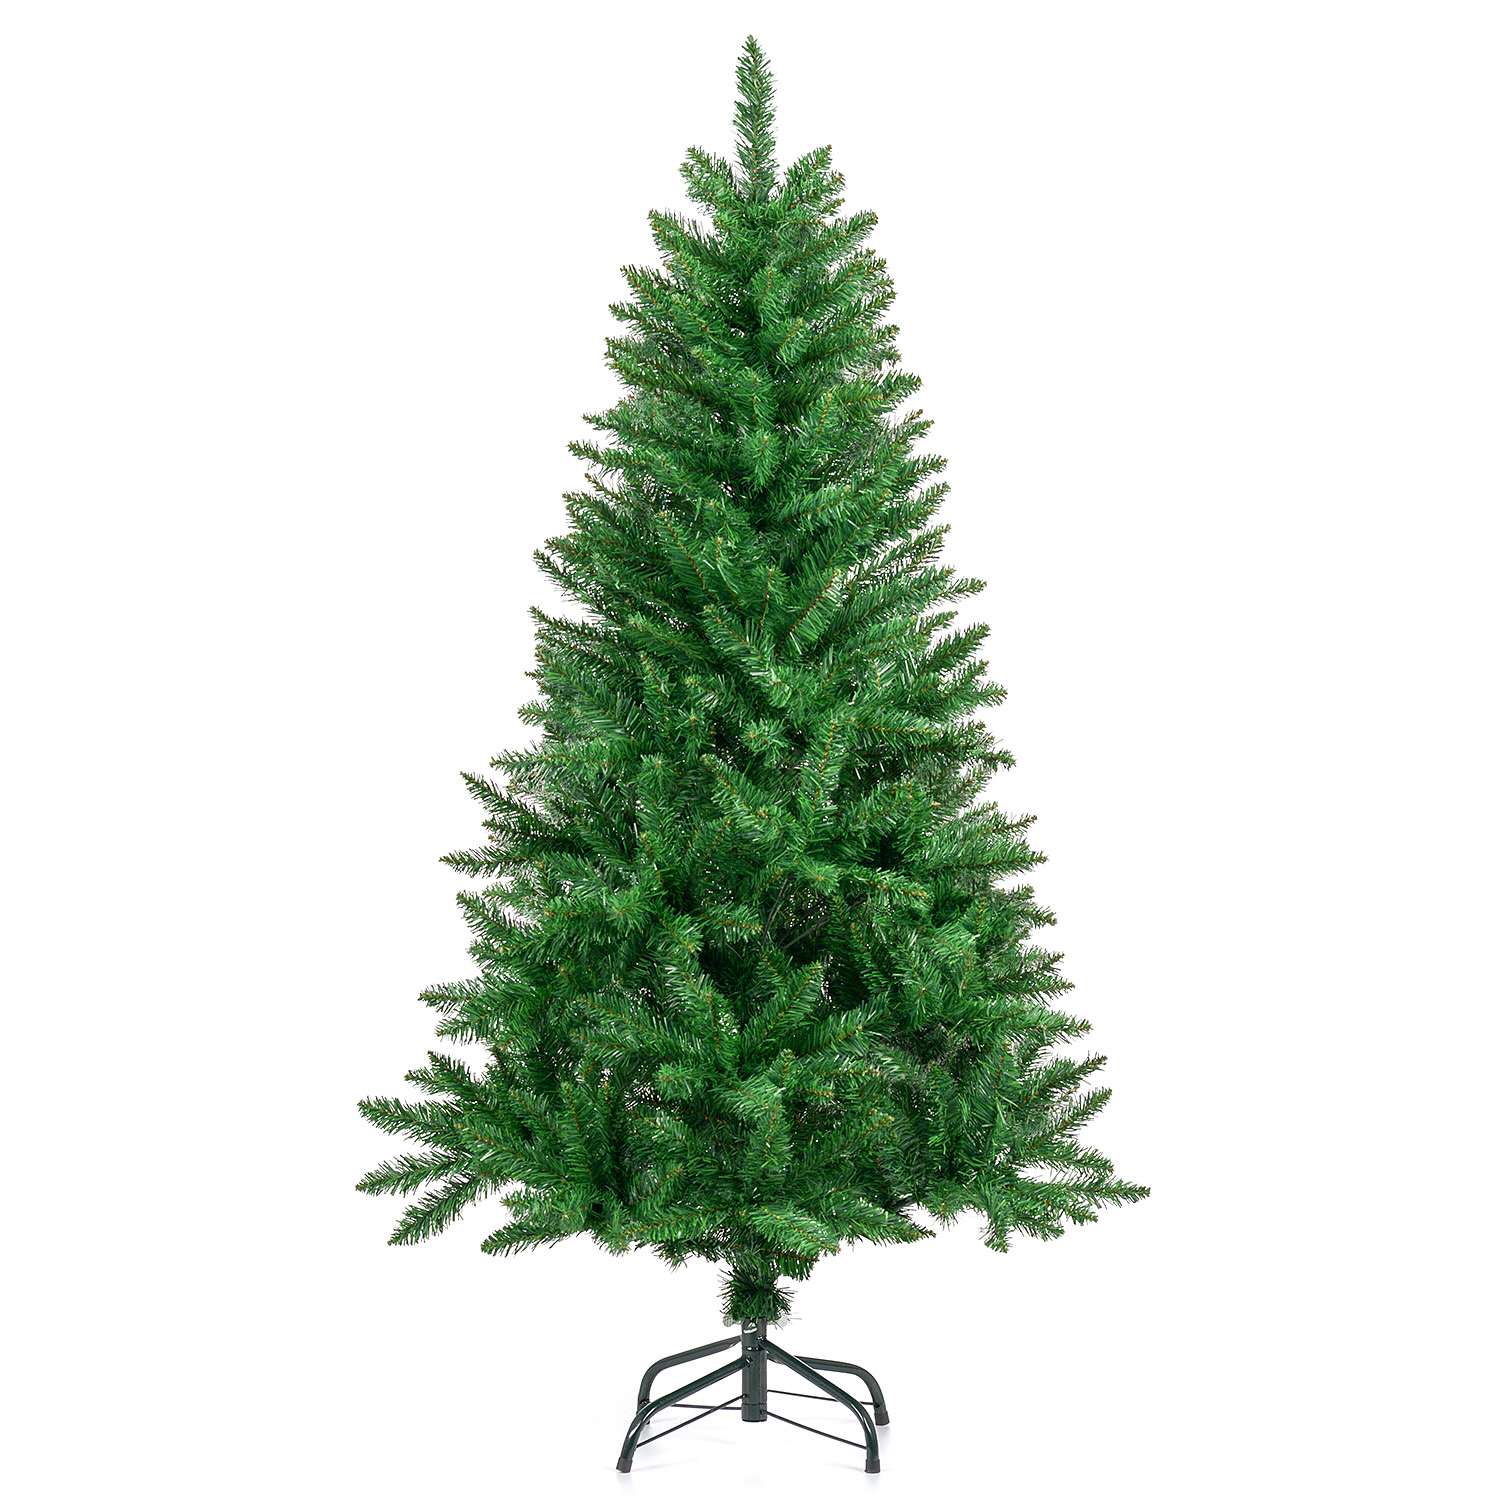 Image of Artificial Spruce Christmas Tree 5ft